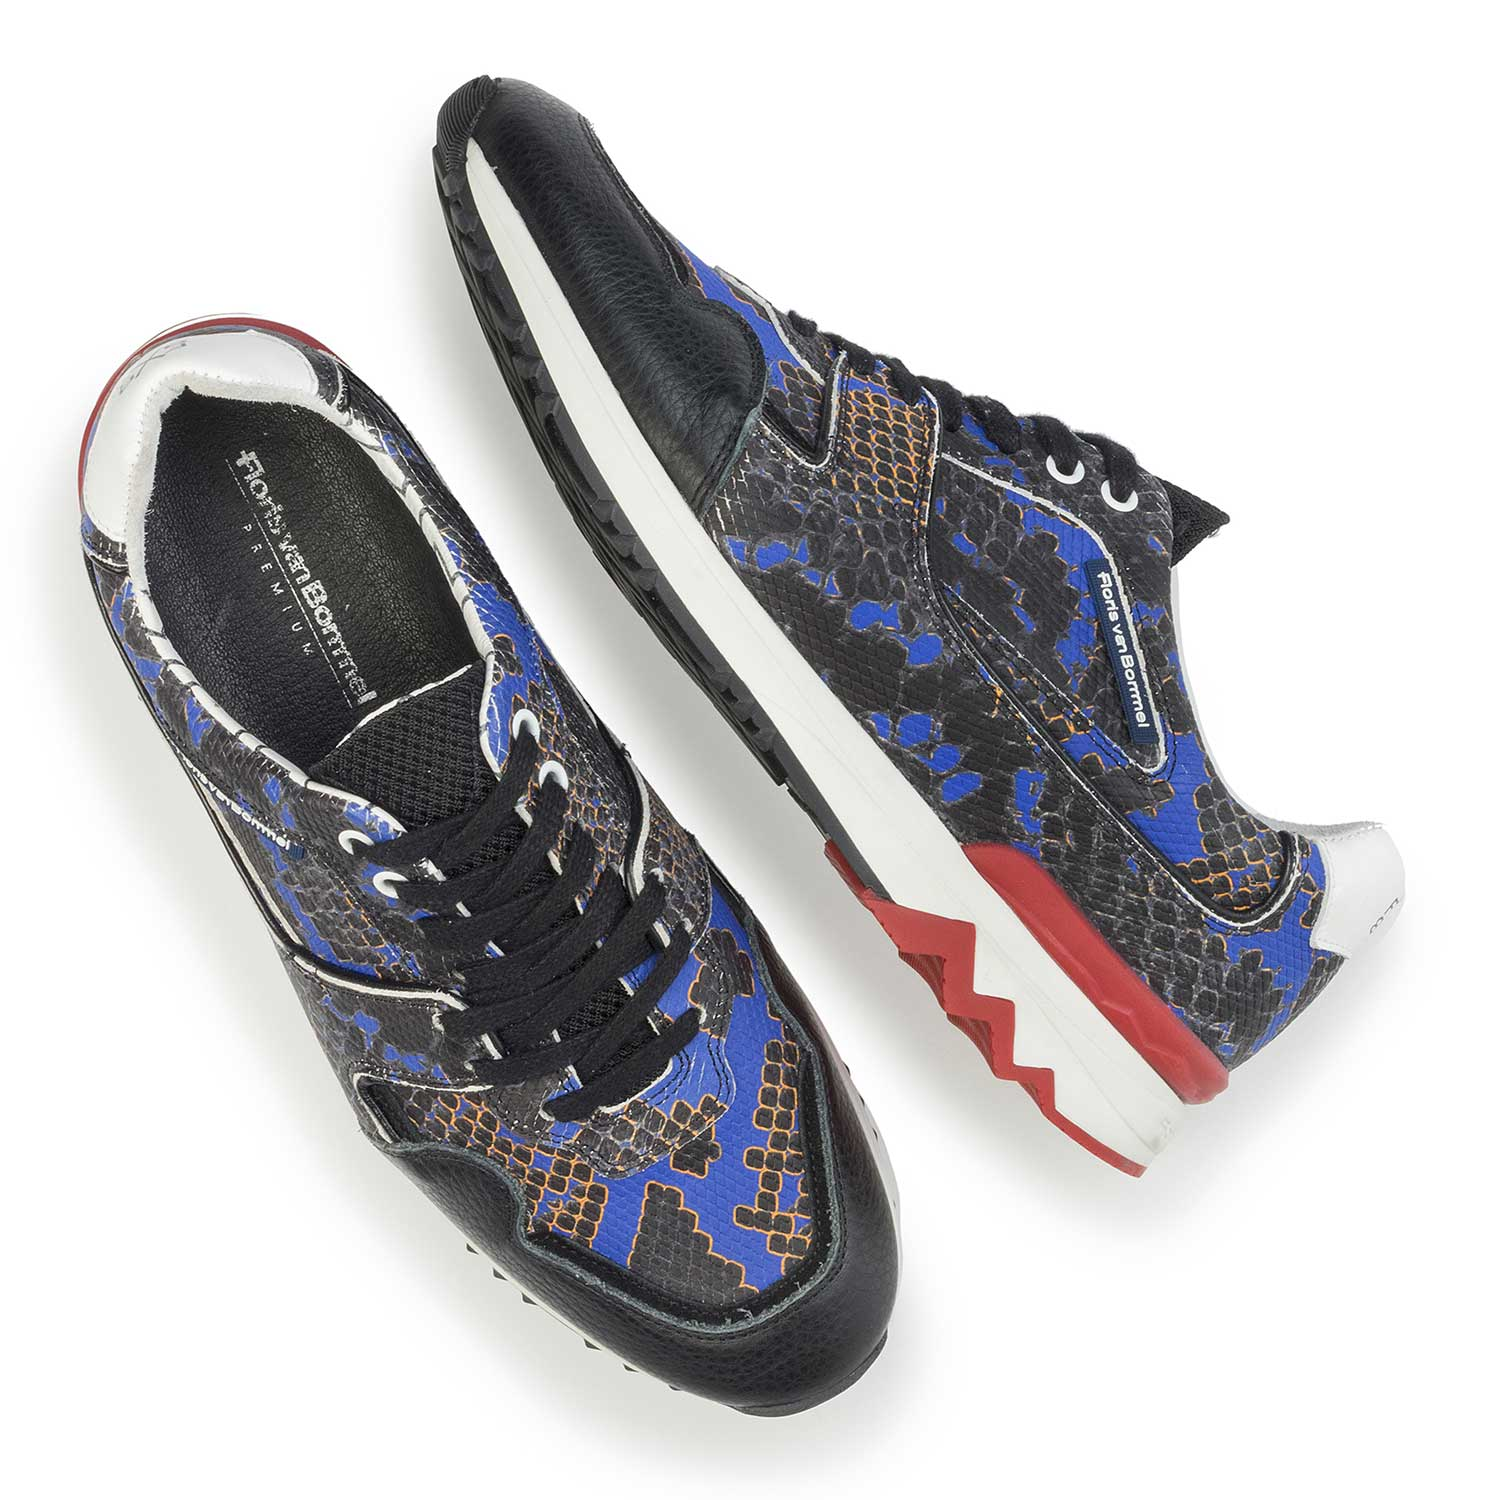 16270/01 - Blue leather sneaker with a snake print